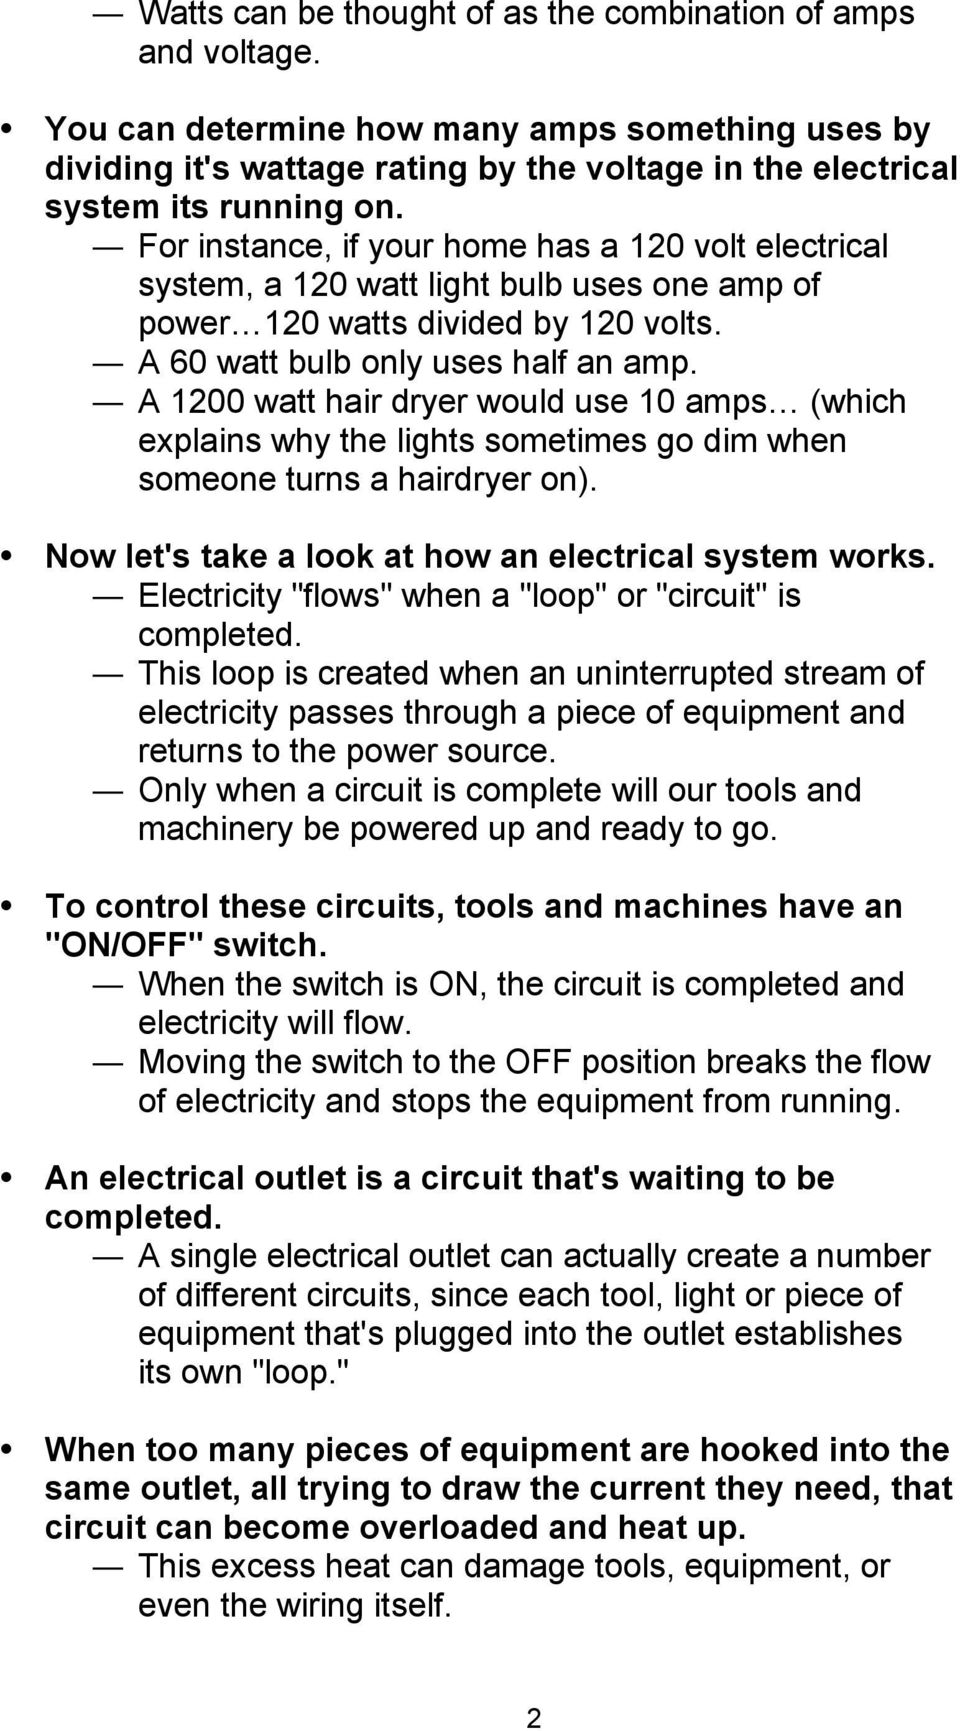 A 1200 watt hair dryer would use 10 amps (which explains why the lights sometimes go dim when someone turns a hairdryer on). Now let's take a look at how an electrical system works.